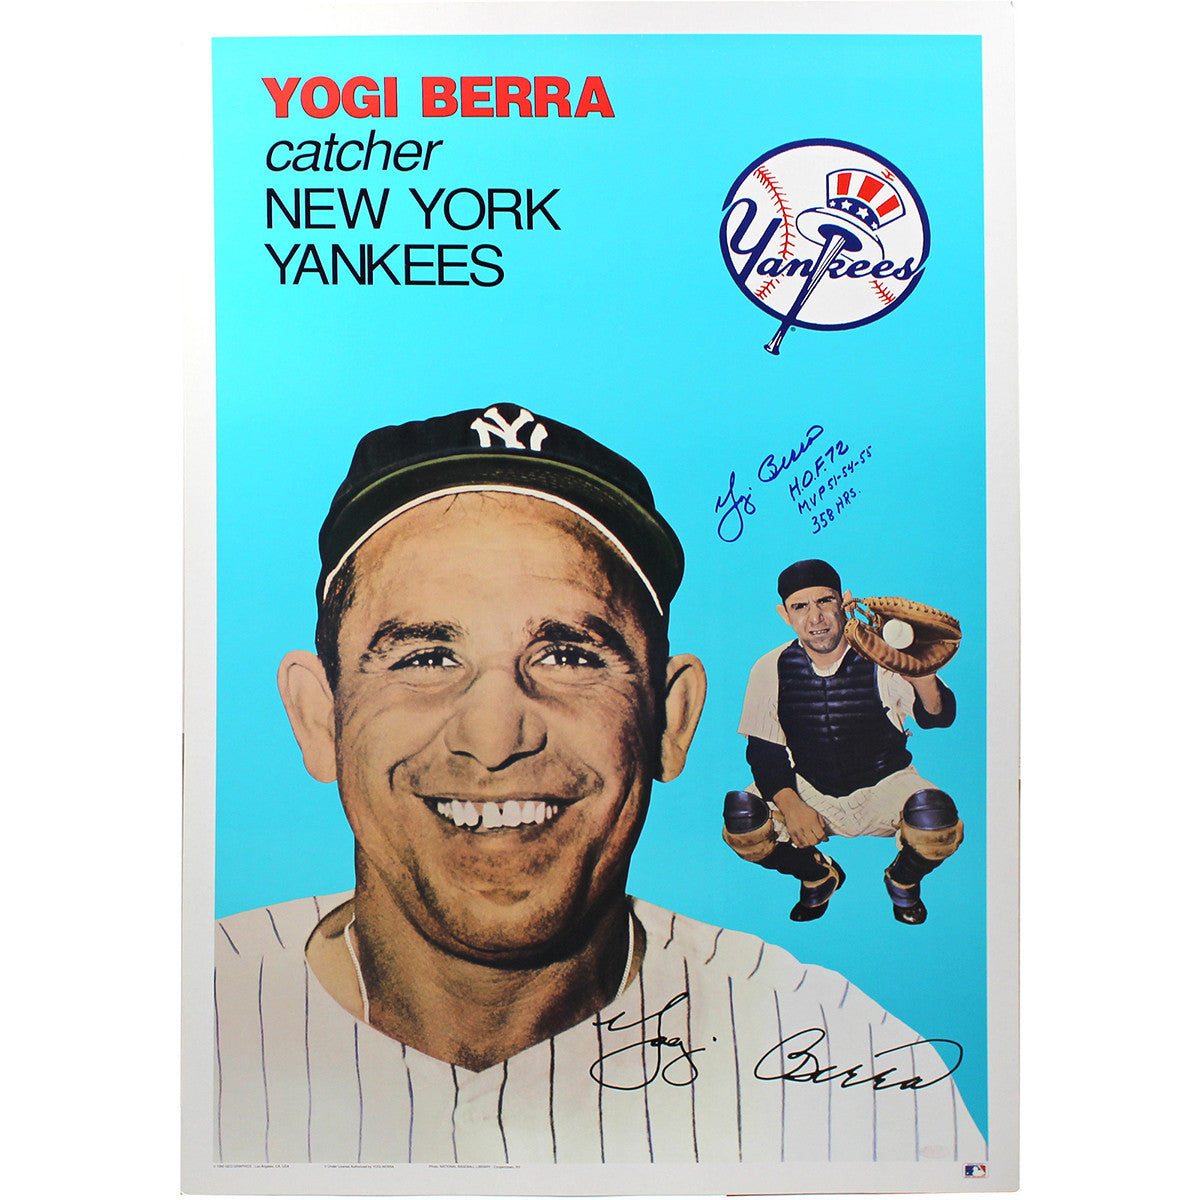 Signed Baseball Memorabilia at Steiner Sports: 30% off